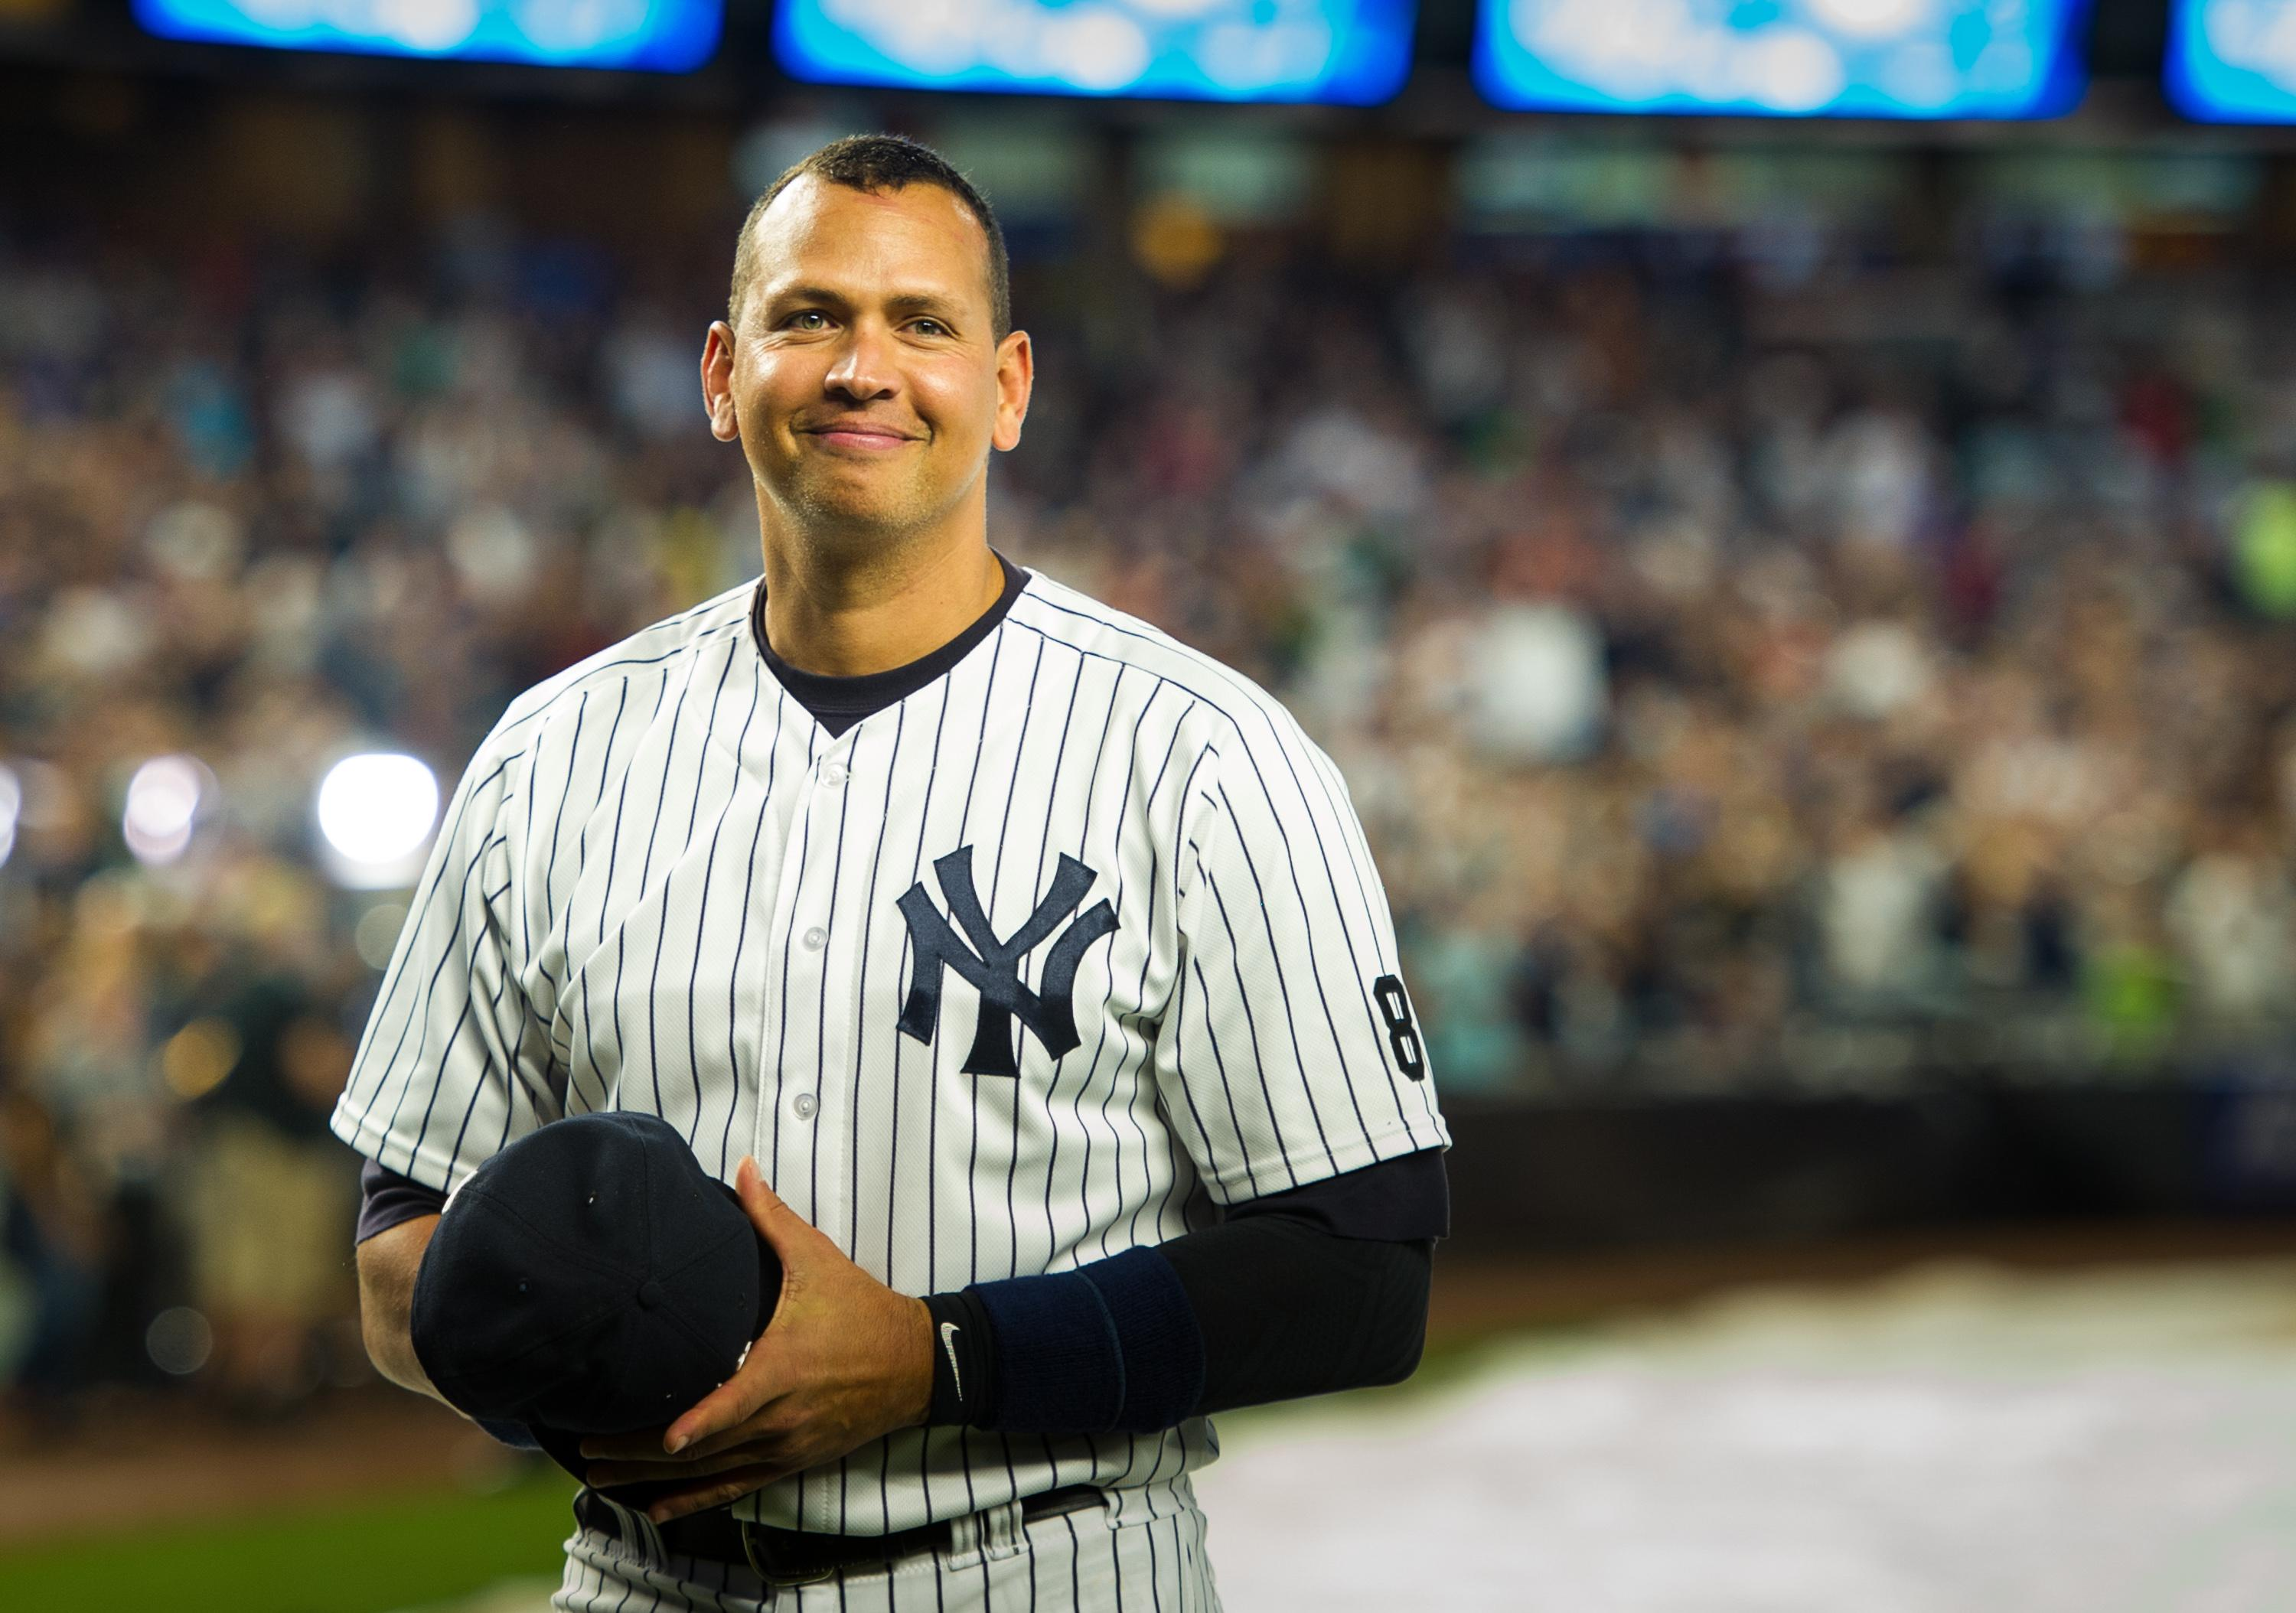 Ultimate third baseman rankings: Where does Alex Rodríguez rank among the all-time greats?